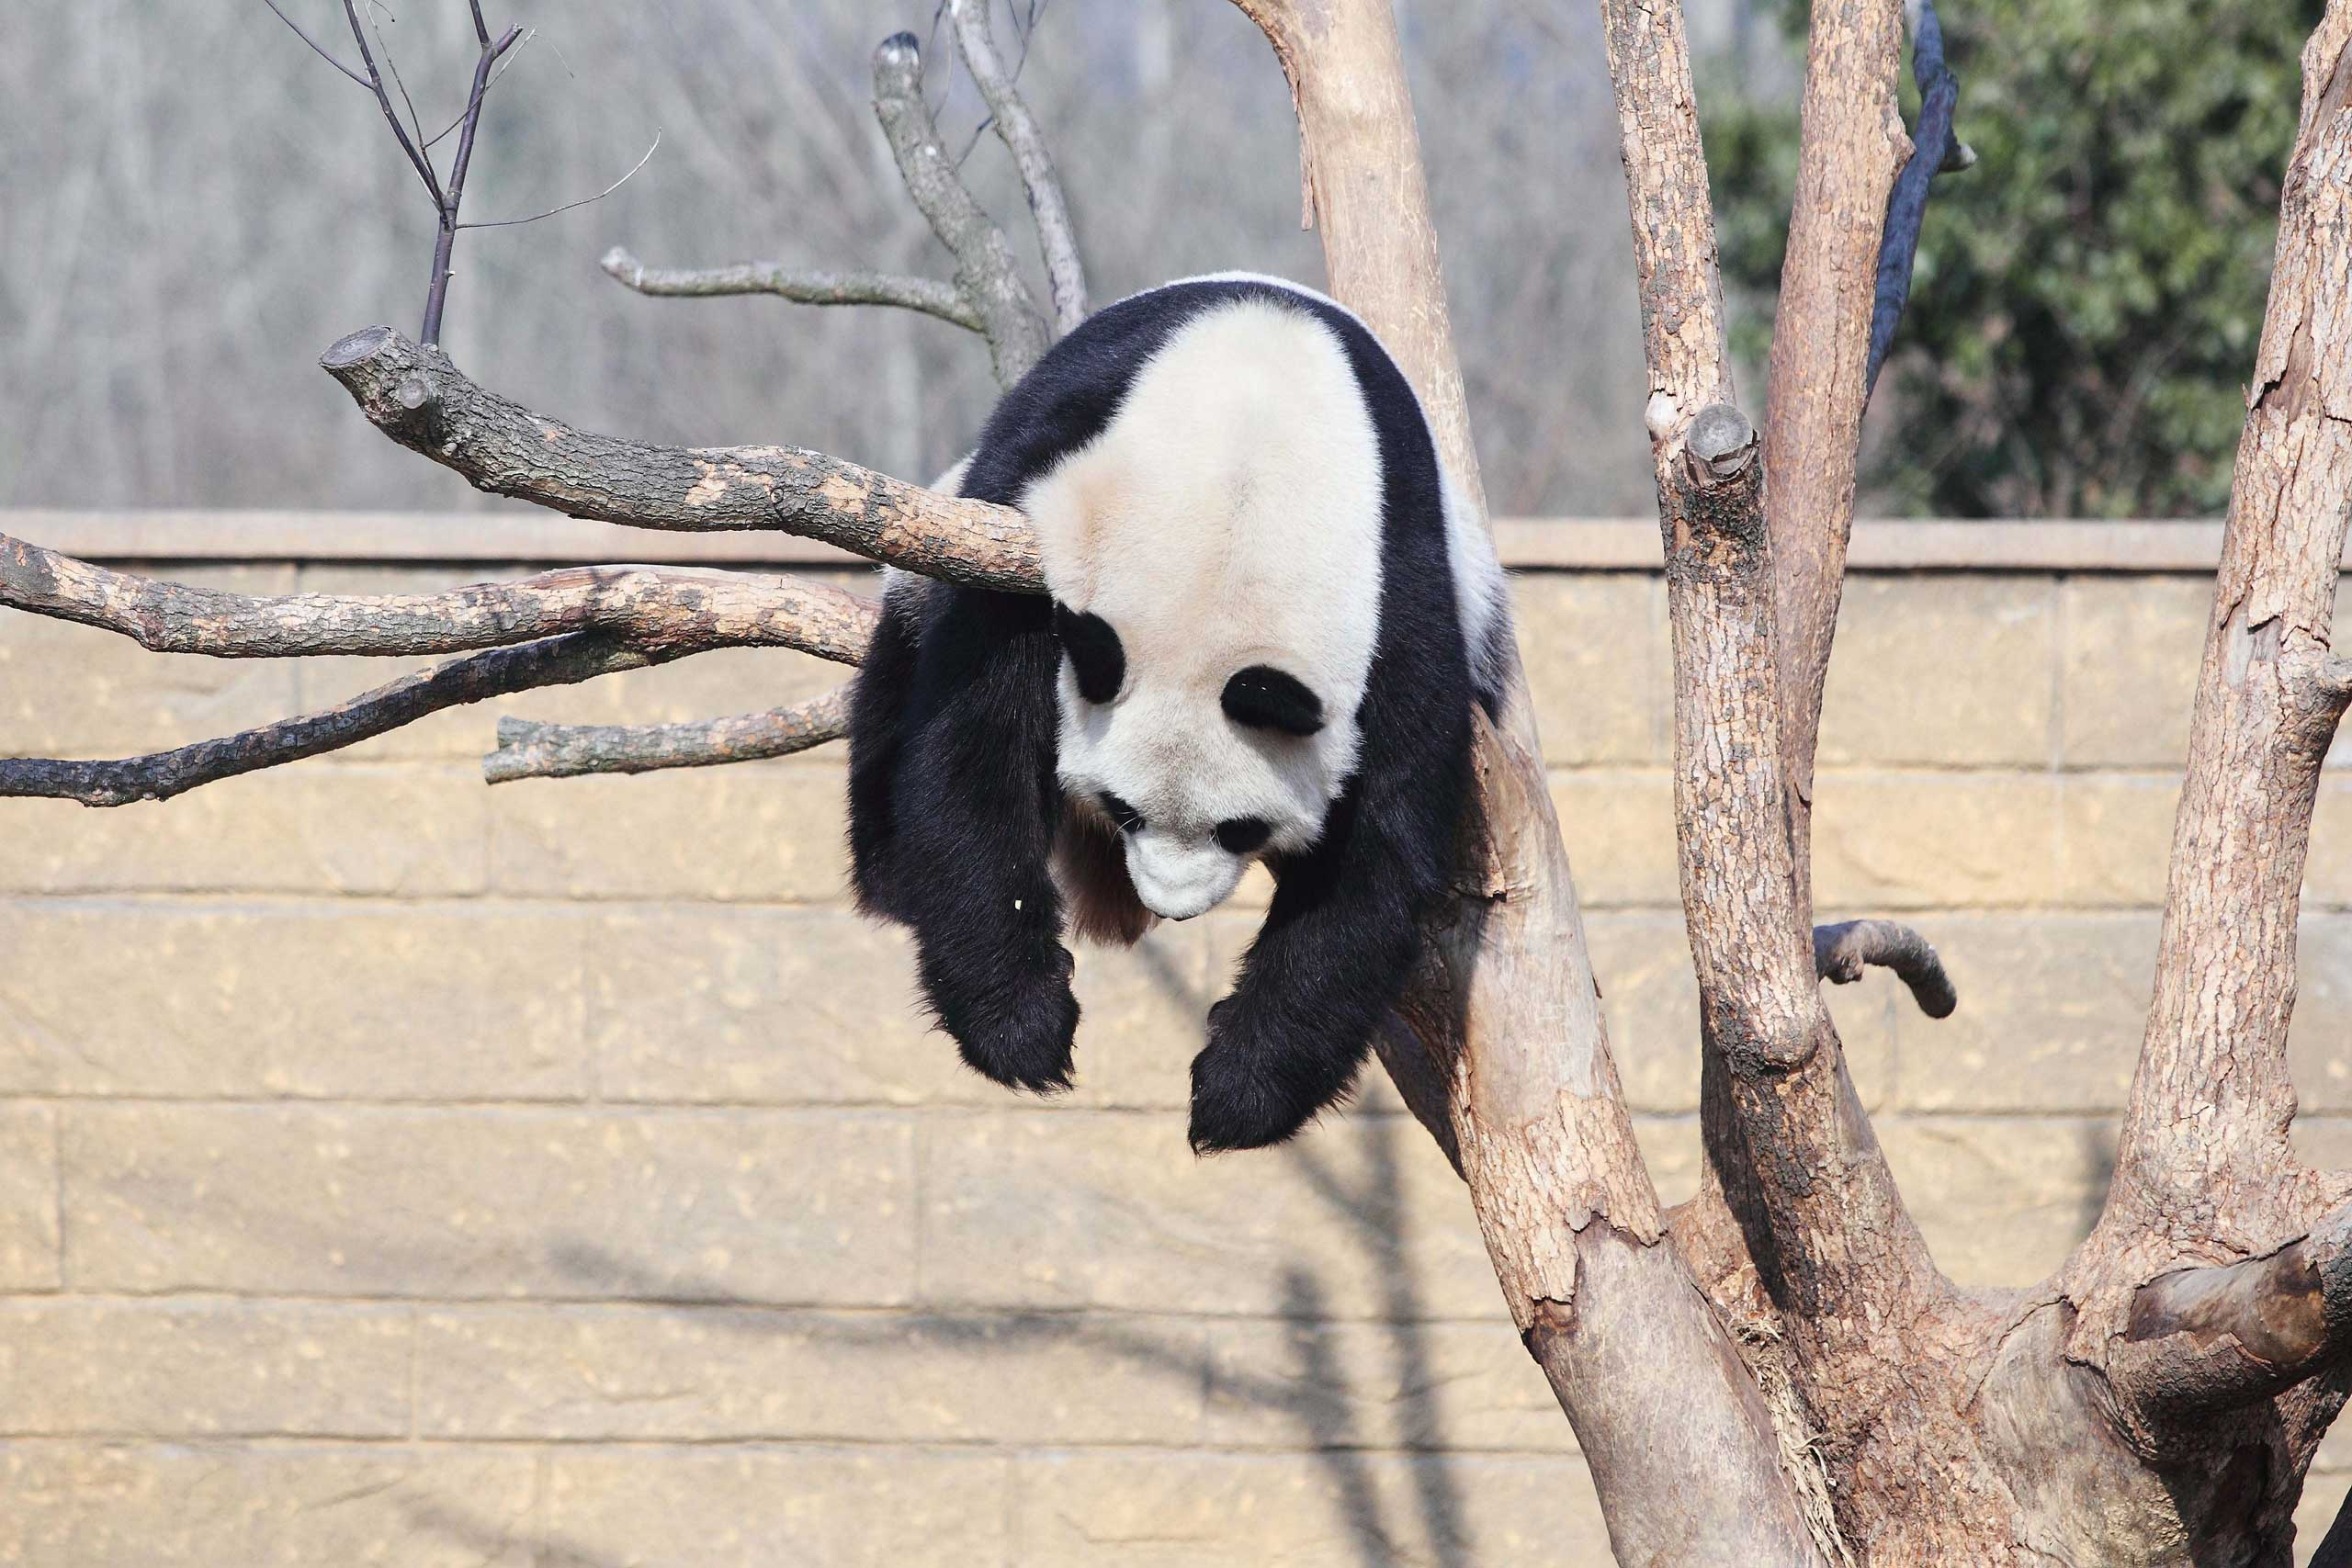 A panda named Li Li plays on a tree in the sunshine in a zoo in Hangzhou in Zhejiang Province, China,  Jan. 01, 2014.